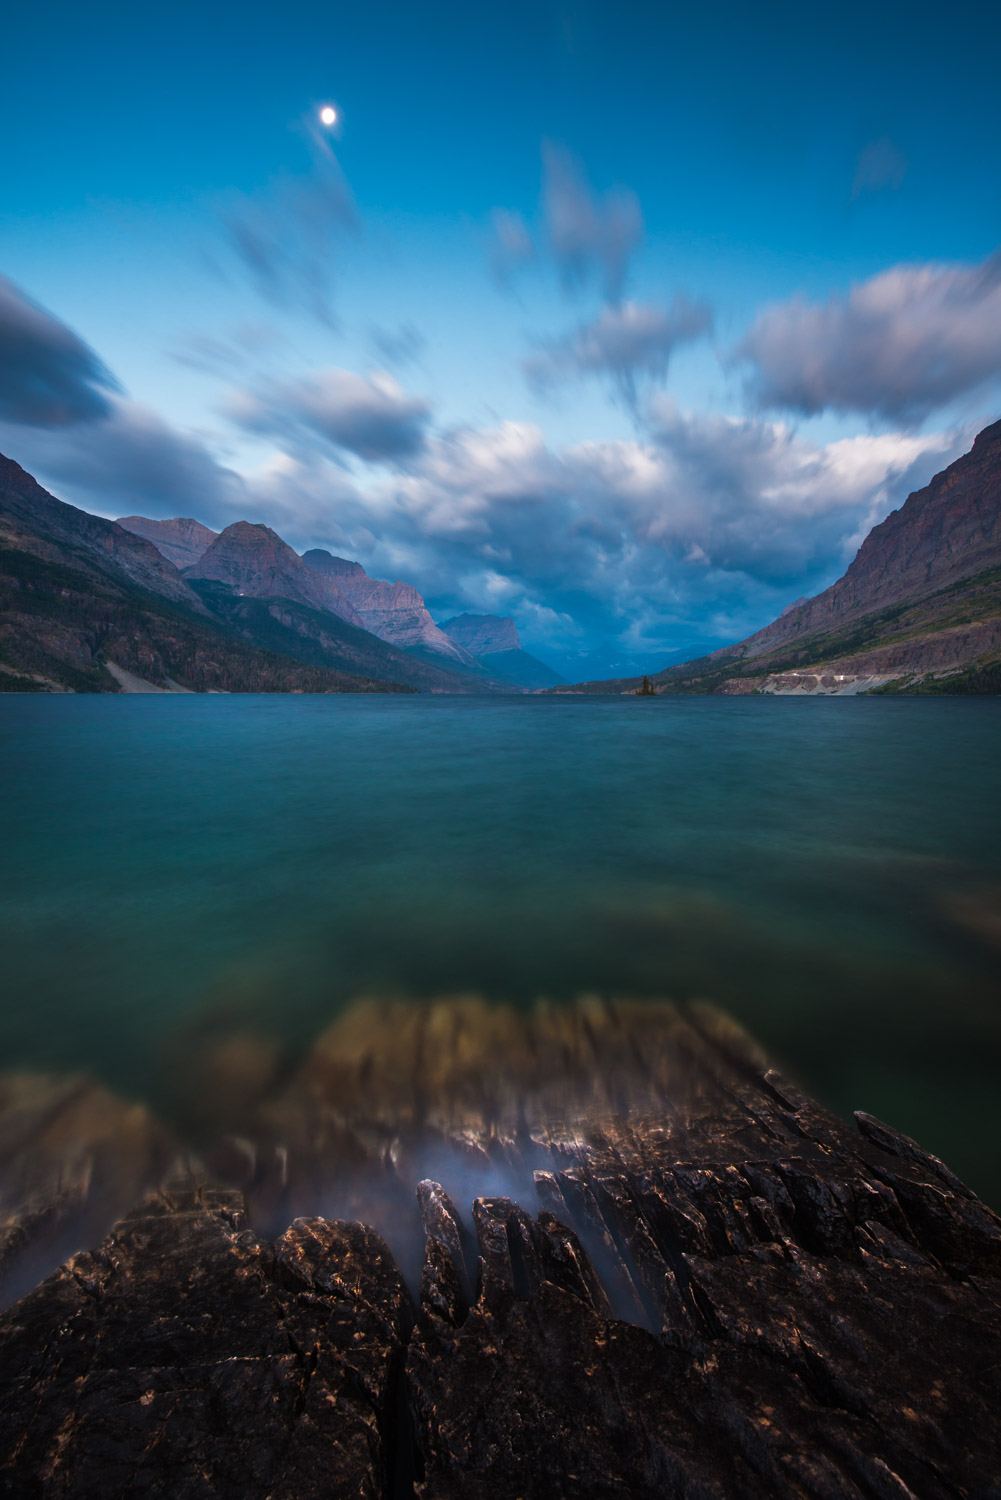 Full moon above St. Mary Lake at twilight in Glacier National Park, Montana.